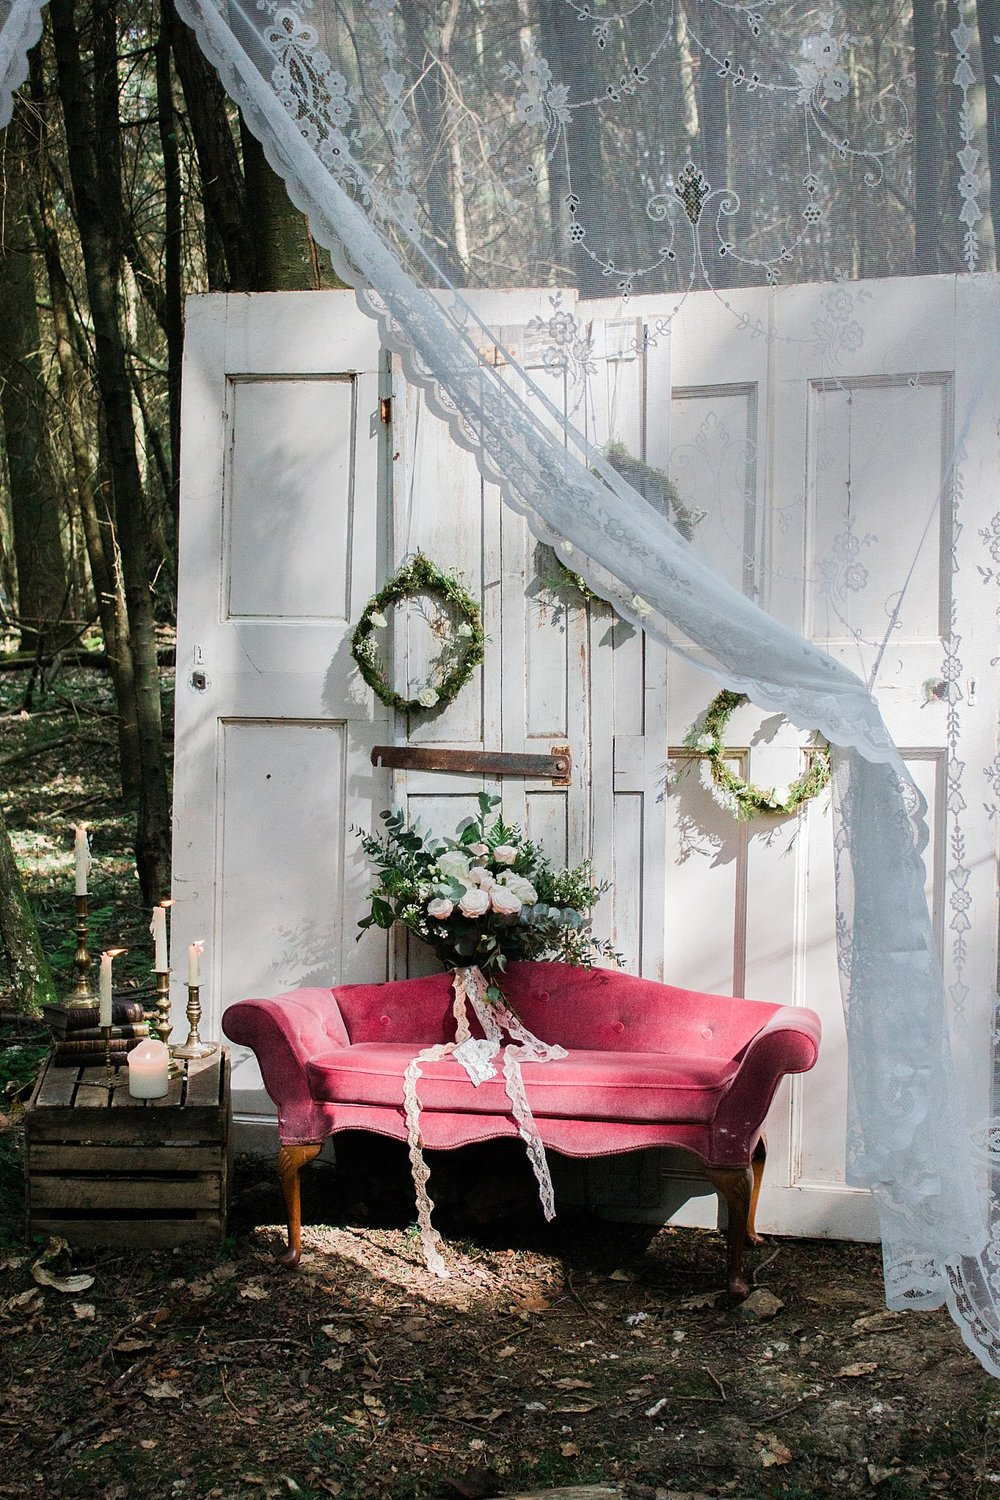 Vintage Amy Wedding Styling-Whimsical Woodland Wedding Inspiration Kent-Woodland Vintage Lounge Area